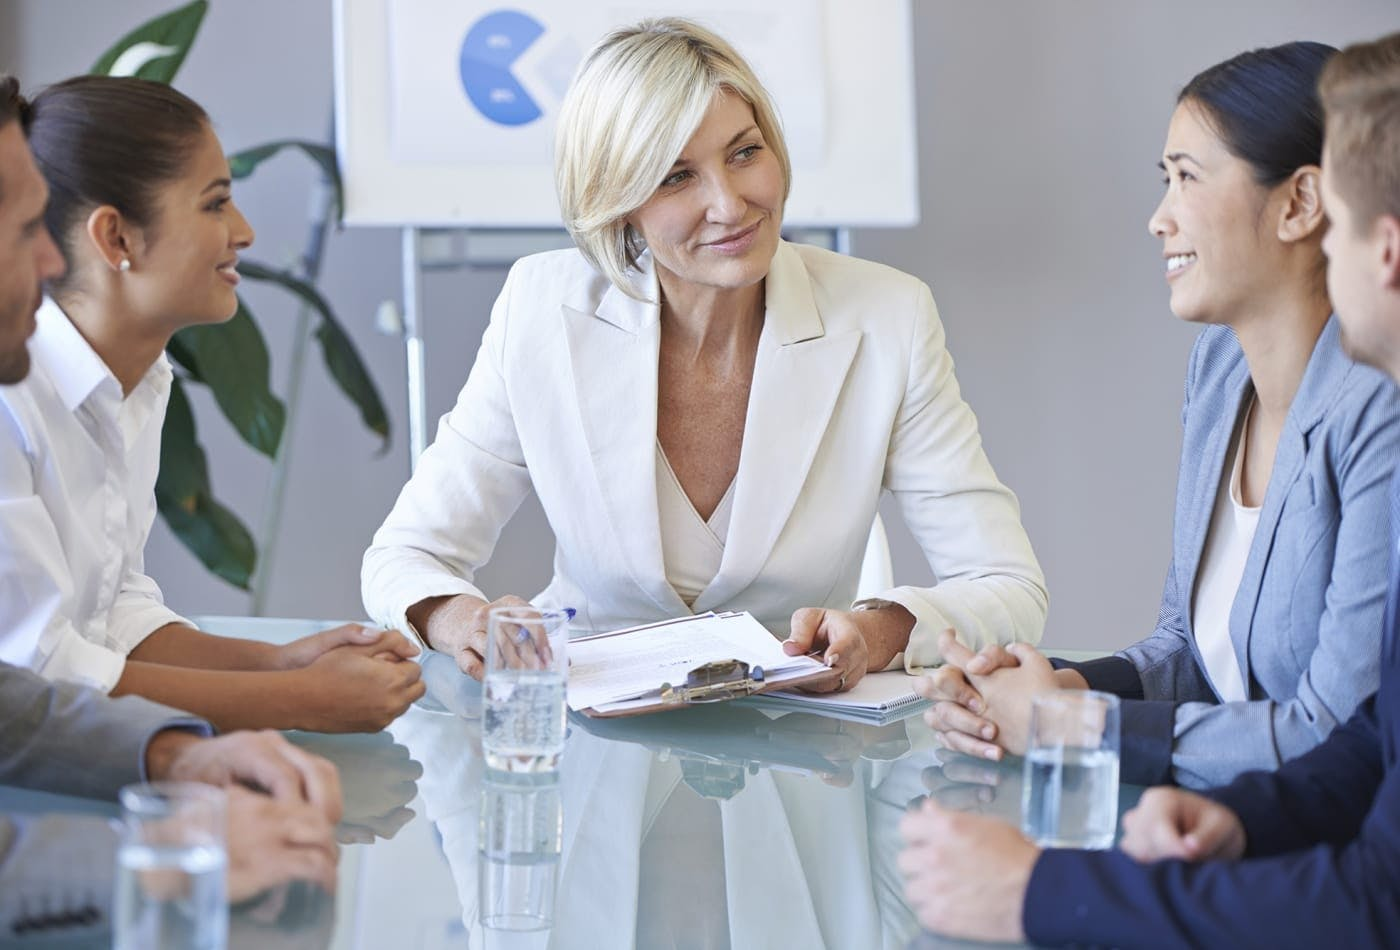 A female leading a business meeting